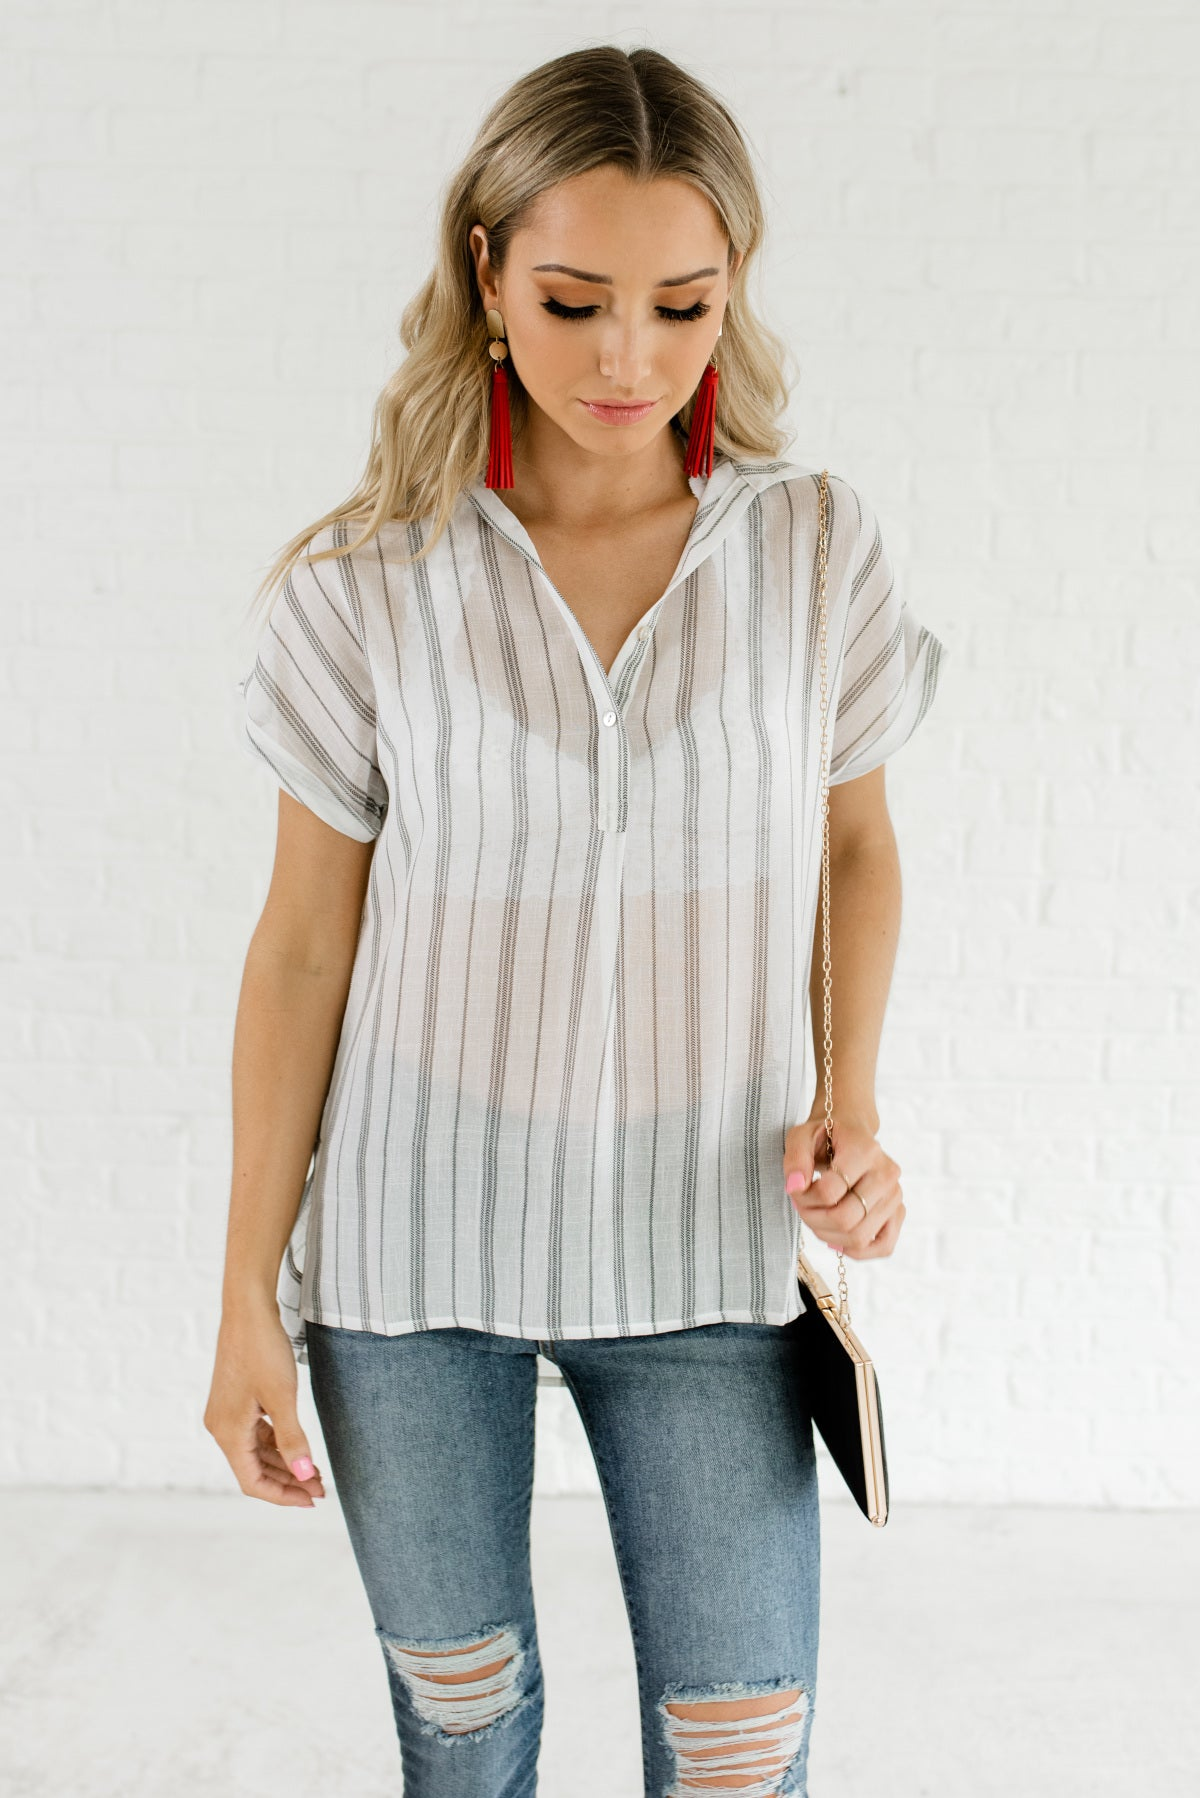 White and Black Button-Up Striped Boutique Tops for Women